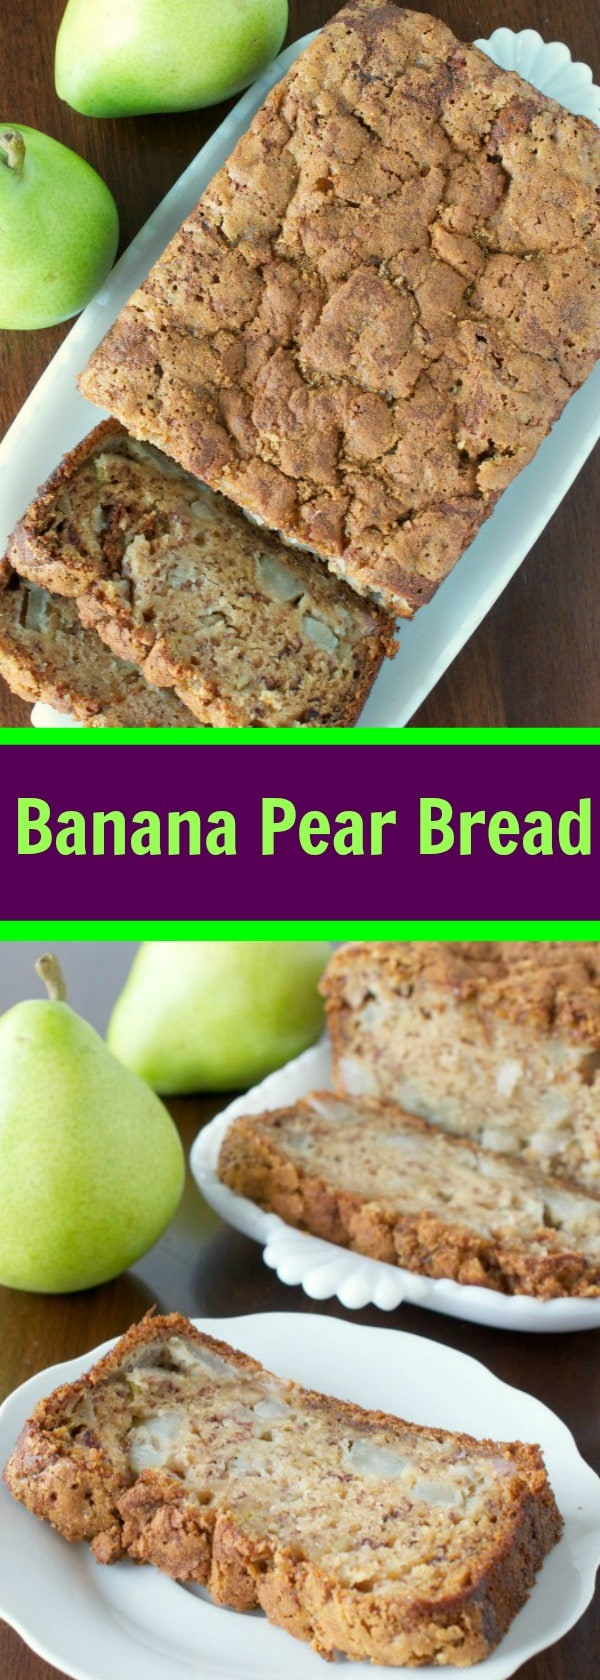 Banana Pear Bread with a crunchy Brown Sugar Cinnamon Topping